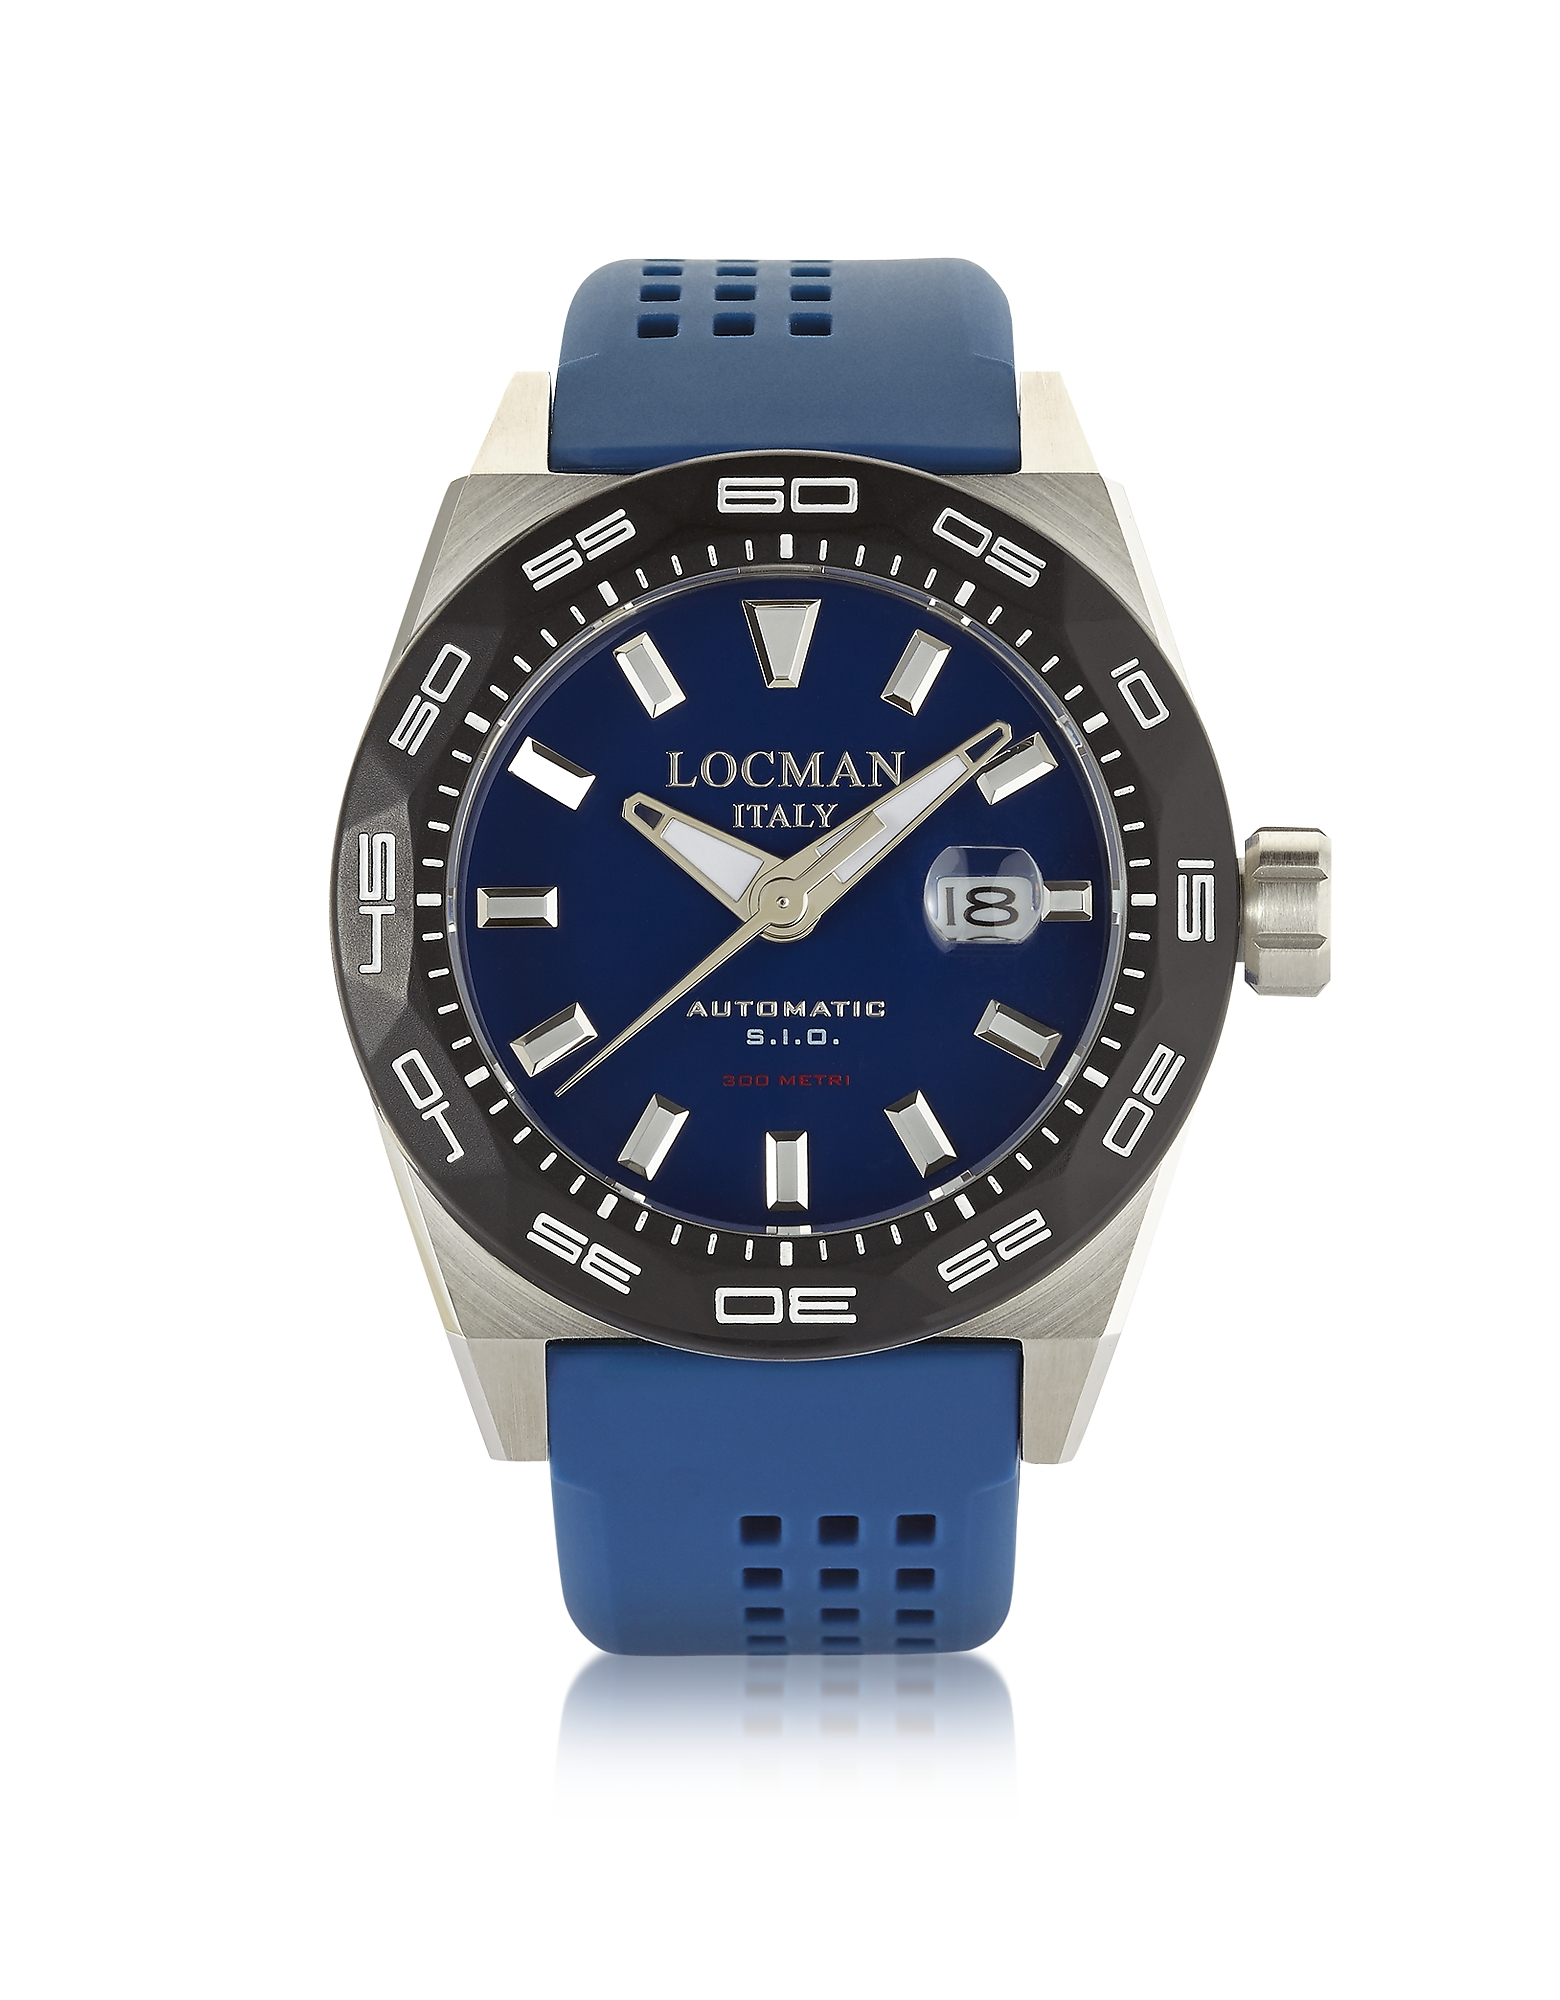 Locman Men's Watches, Stealth 300 mt Analog Display Automatic Self Wind Blue Stainless Steel, Titani